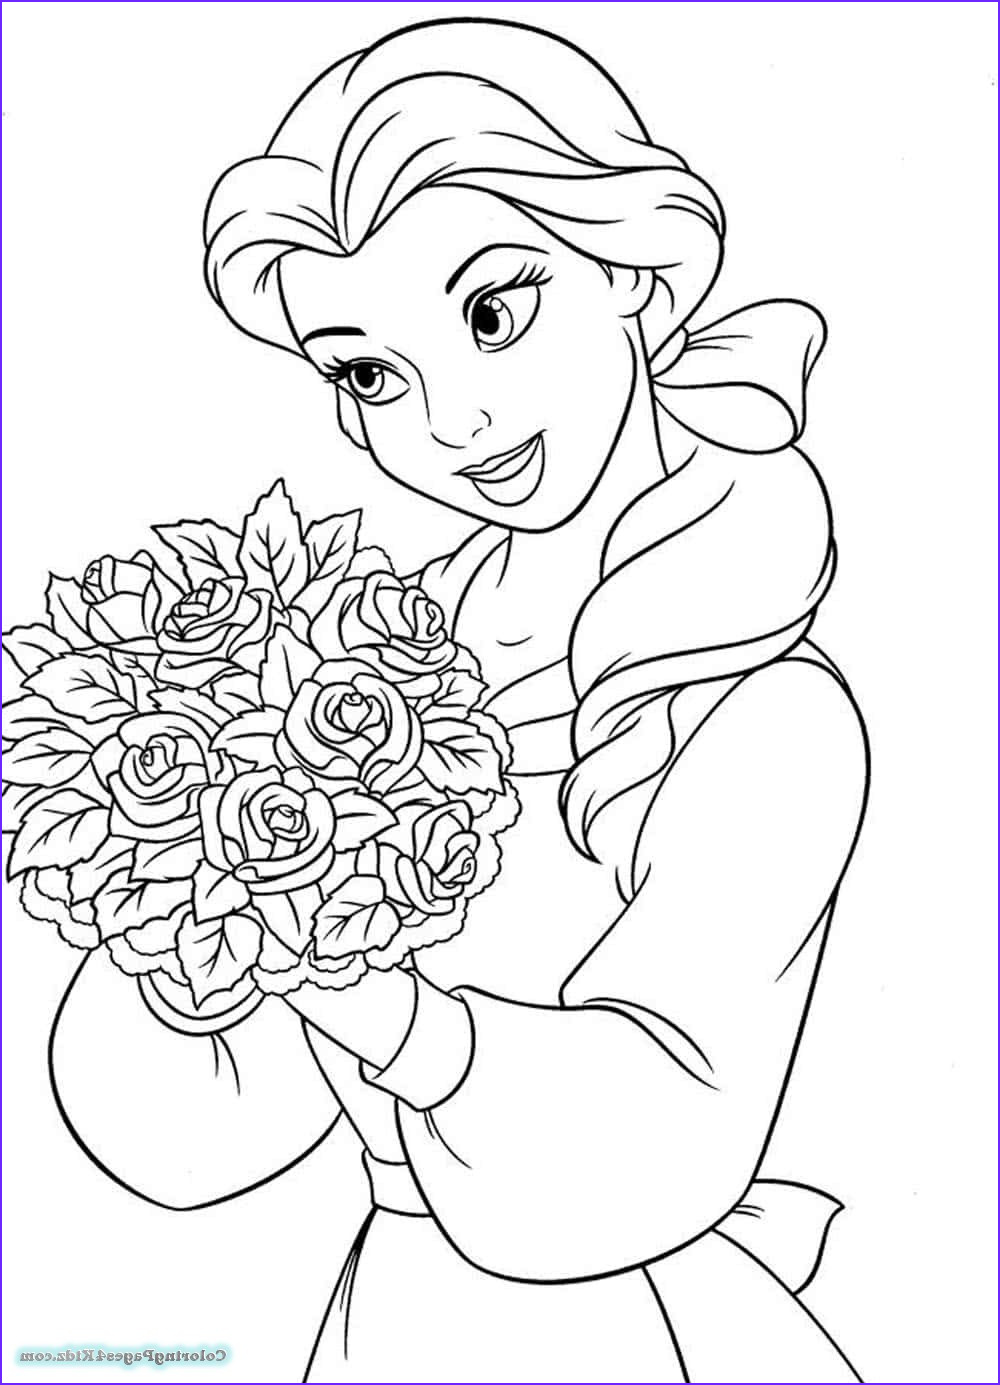 Disney Princess Halloween Coloring Pages Inspirational Photography Disney Princess Halloween Coloring Pages Colotring Pages